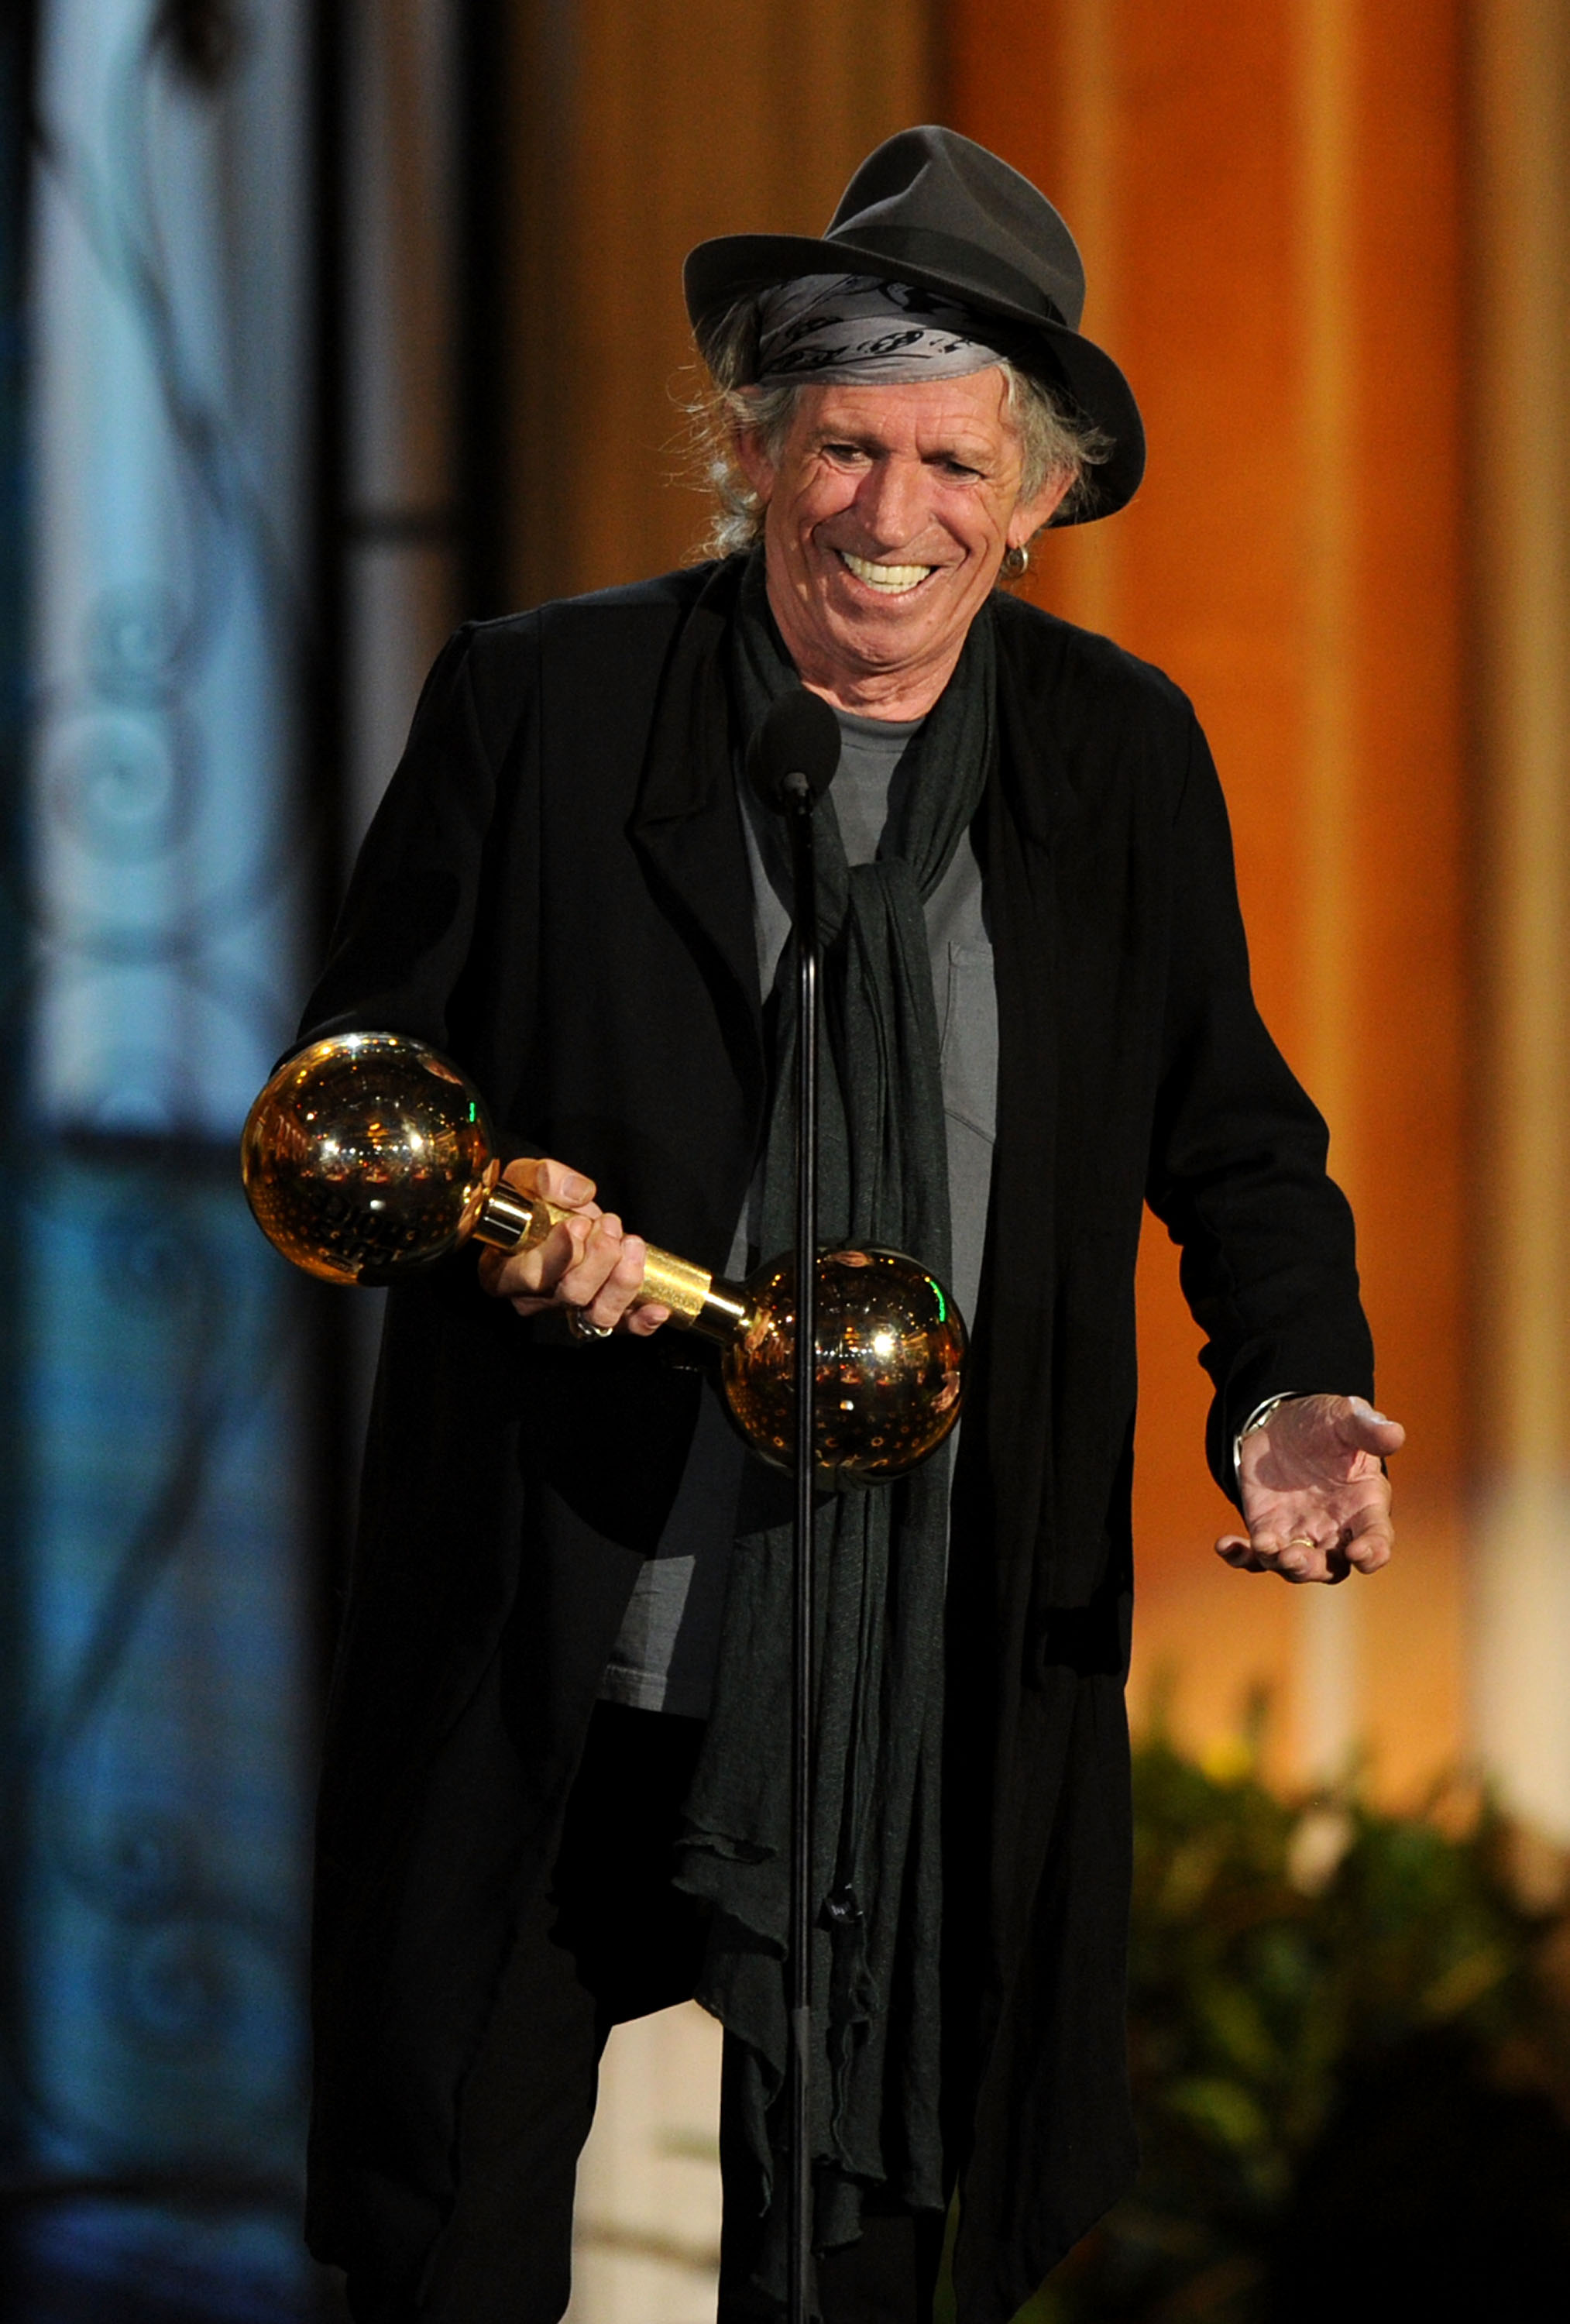 """CULVER CITY, CA - JUNE 04:  Musician Keith Richards accepts the Brass Balls award onstage during Spike TV's 5th annual 2011 """"Guys Choice"""" Awards at Sony Pictures Studios on June 4, 2011 in Culver City, California.  (Photo by Kevin Winter/Getty Images)"""